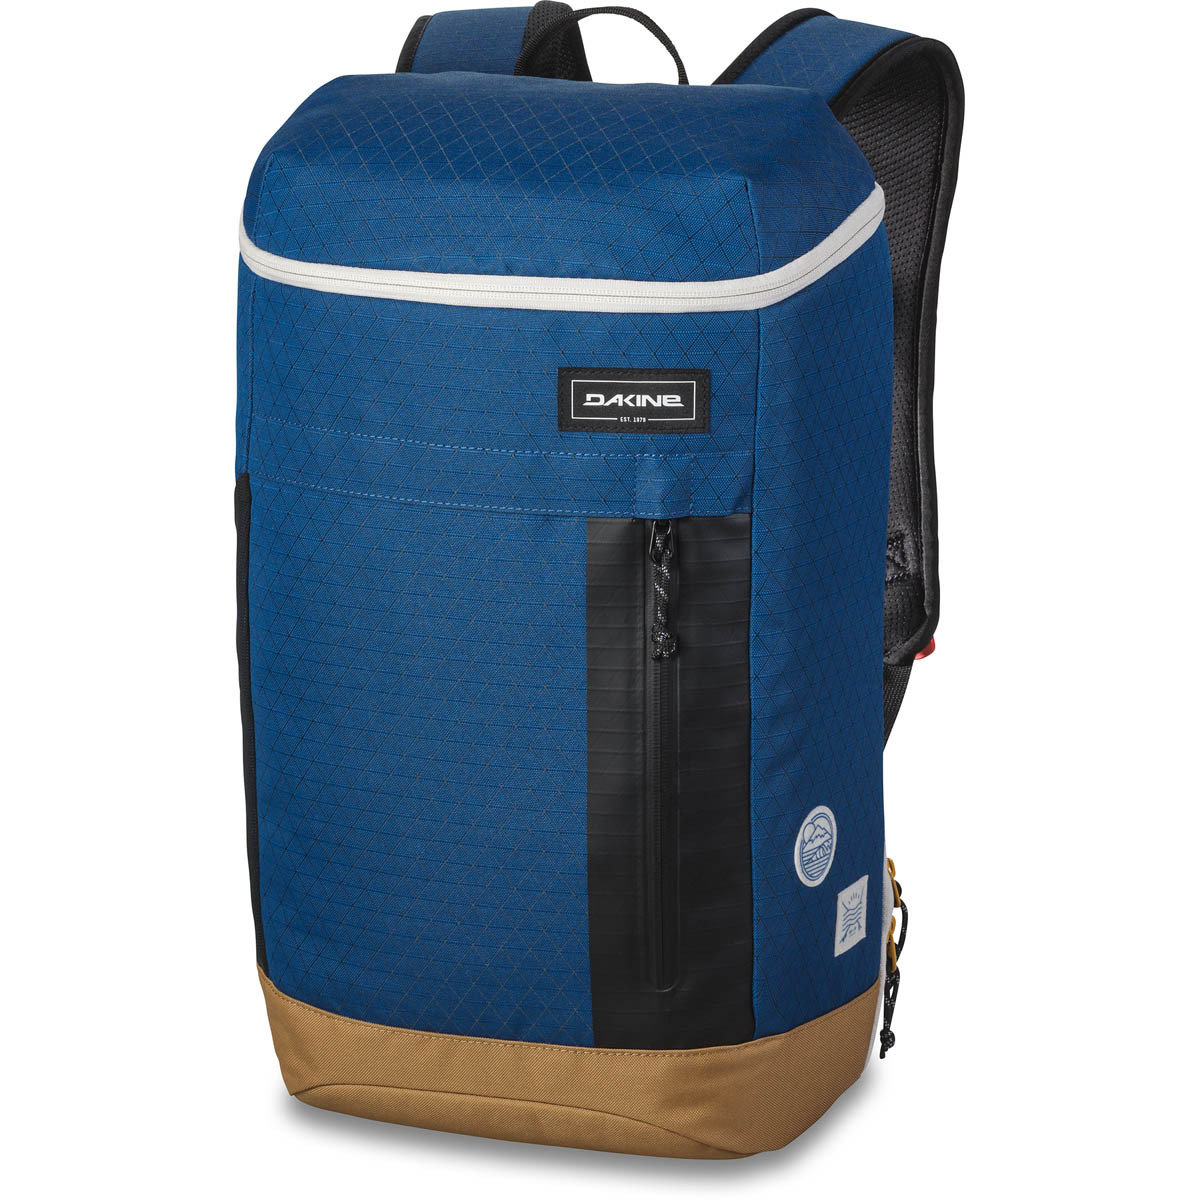 df8c7ab6aa3 Dakine Concourse 25l Backpack - Scout